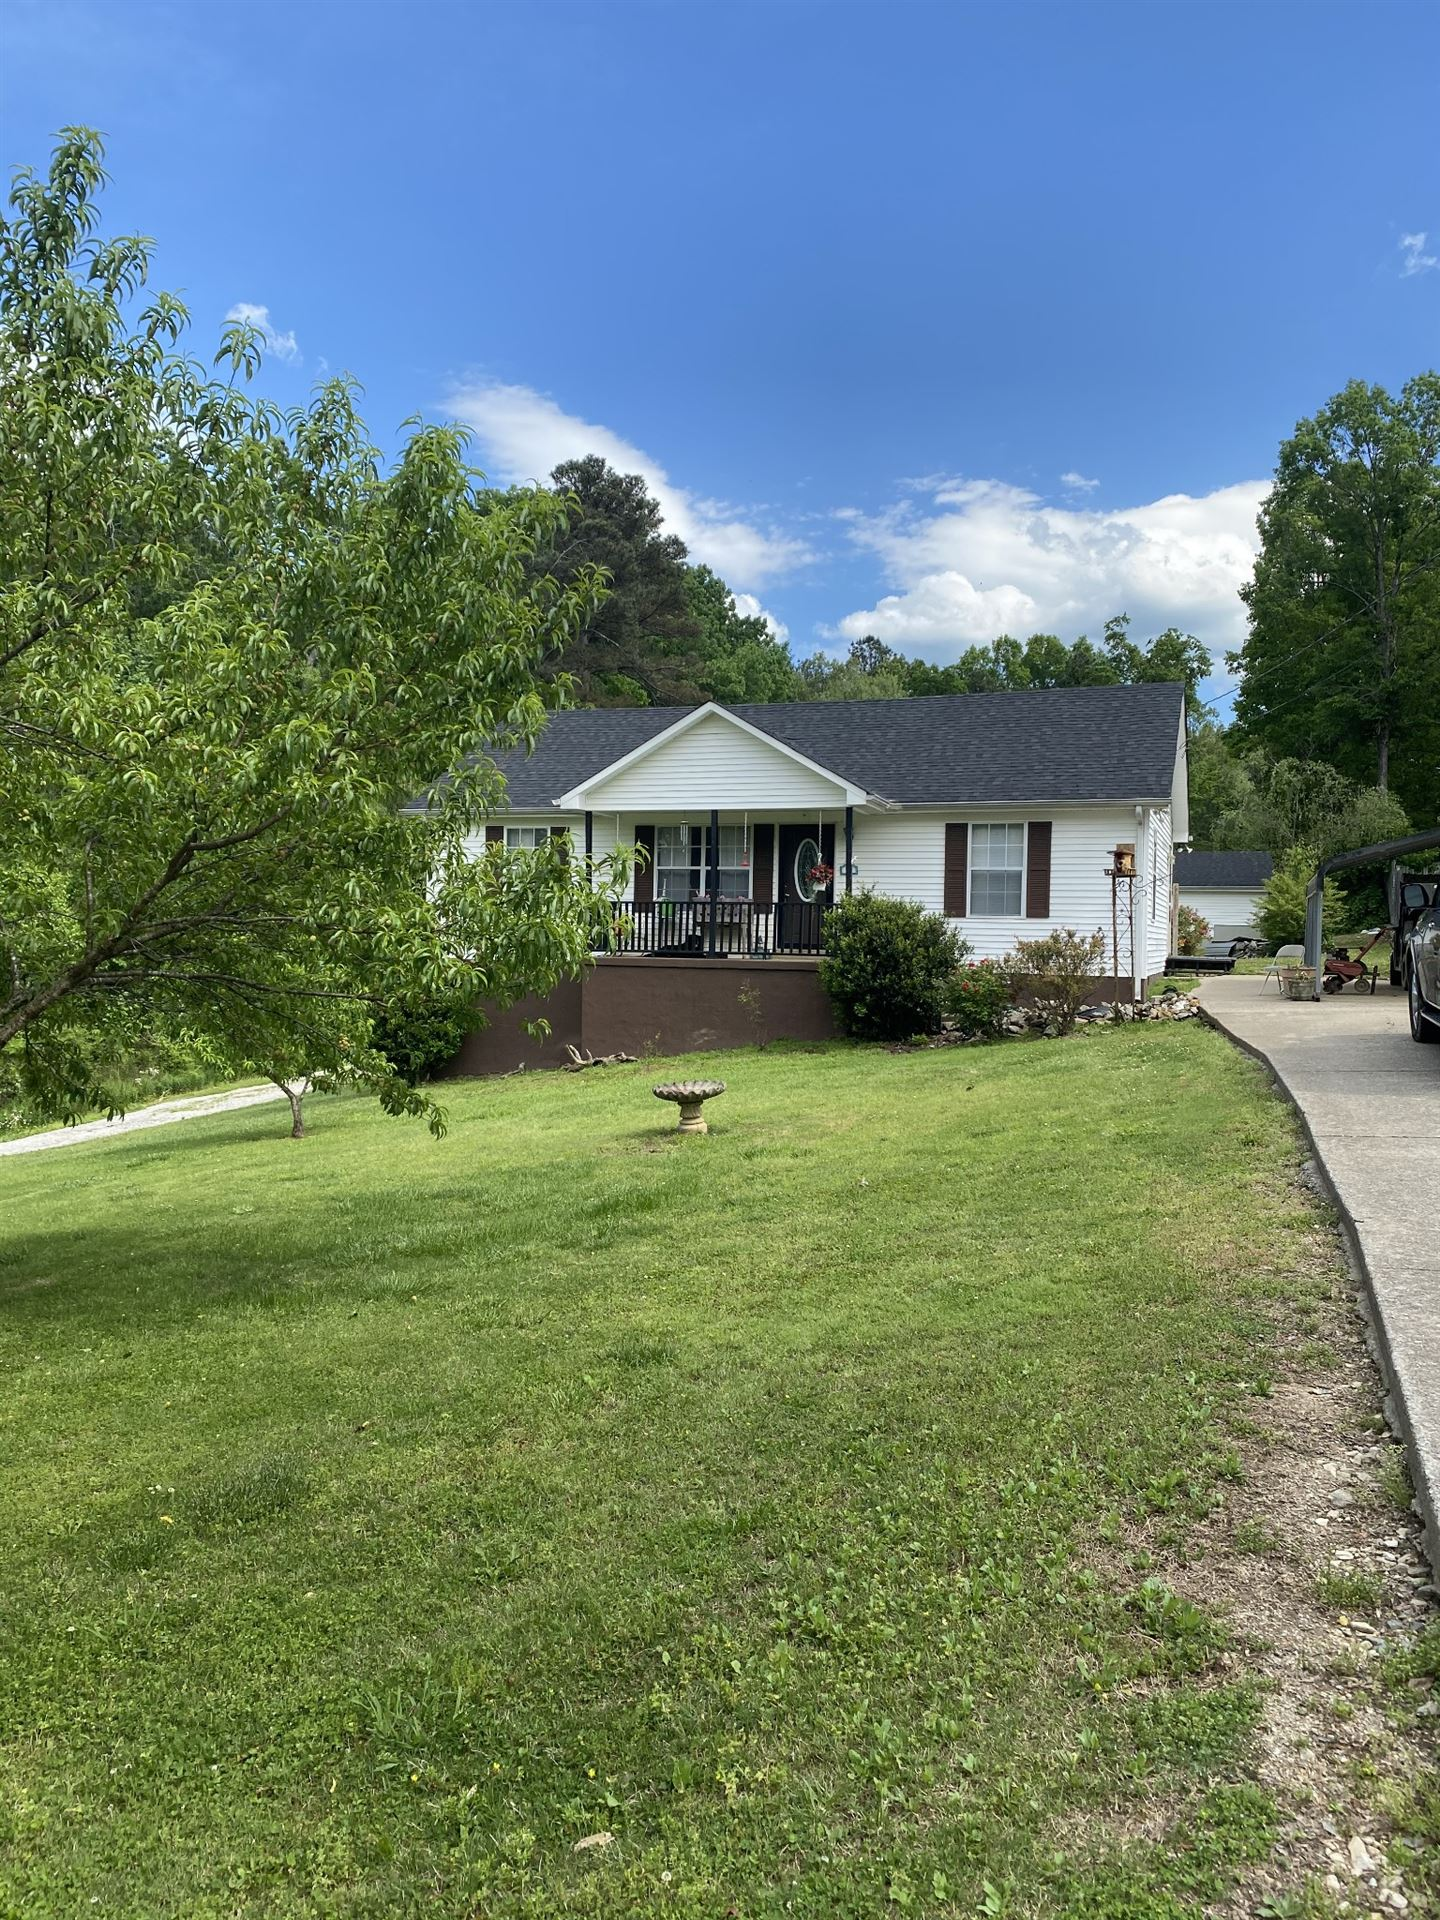 70 Windy Hills Ln, McEwen, TN 37101 - MLS#: 2224384